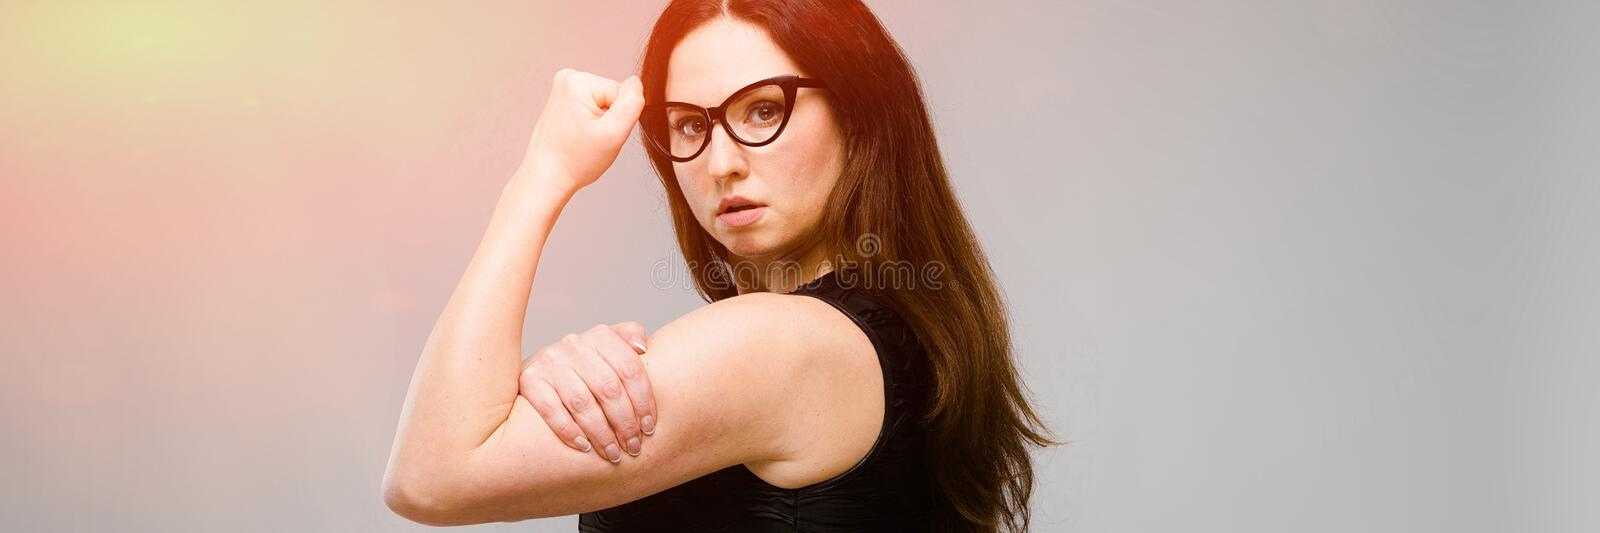 Emotional pretty confident plus size model in glasses showing her strength standing in studio on gray background royalty free stock photography